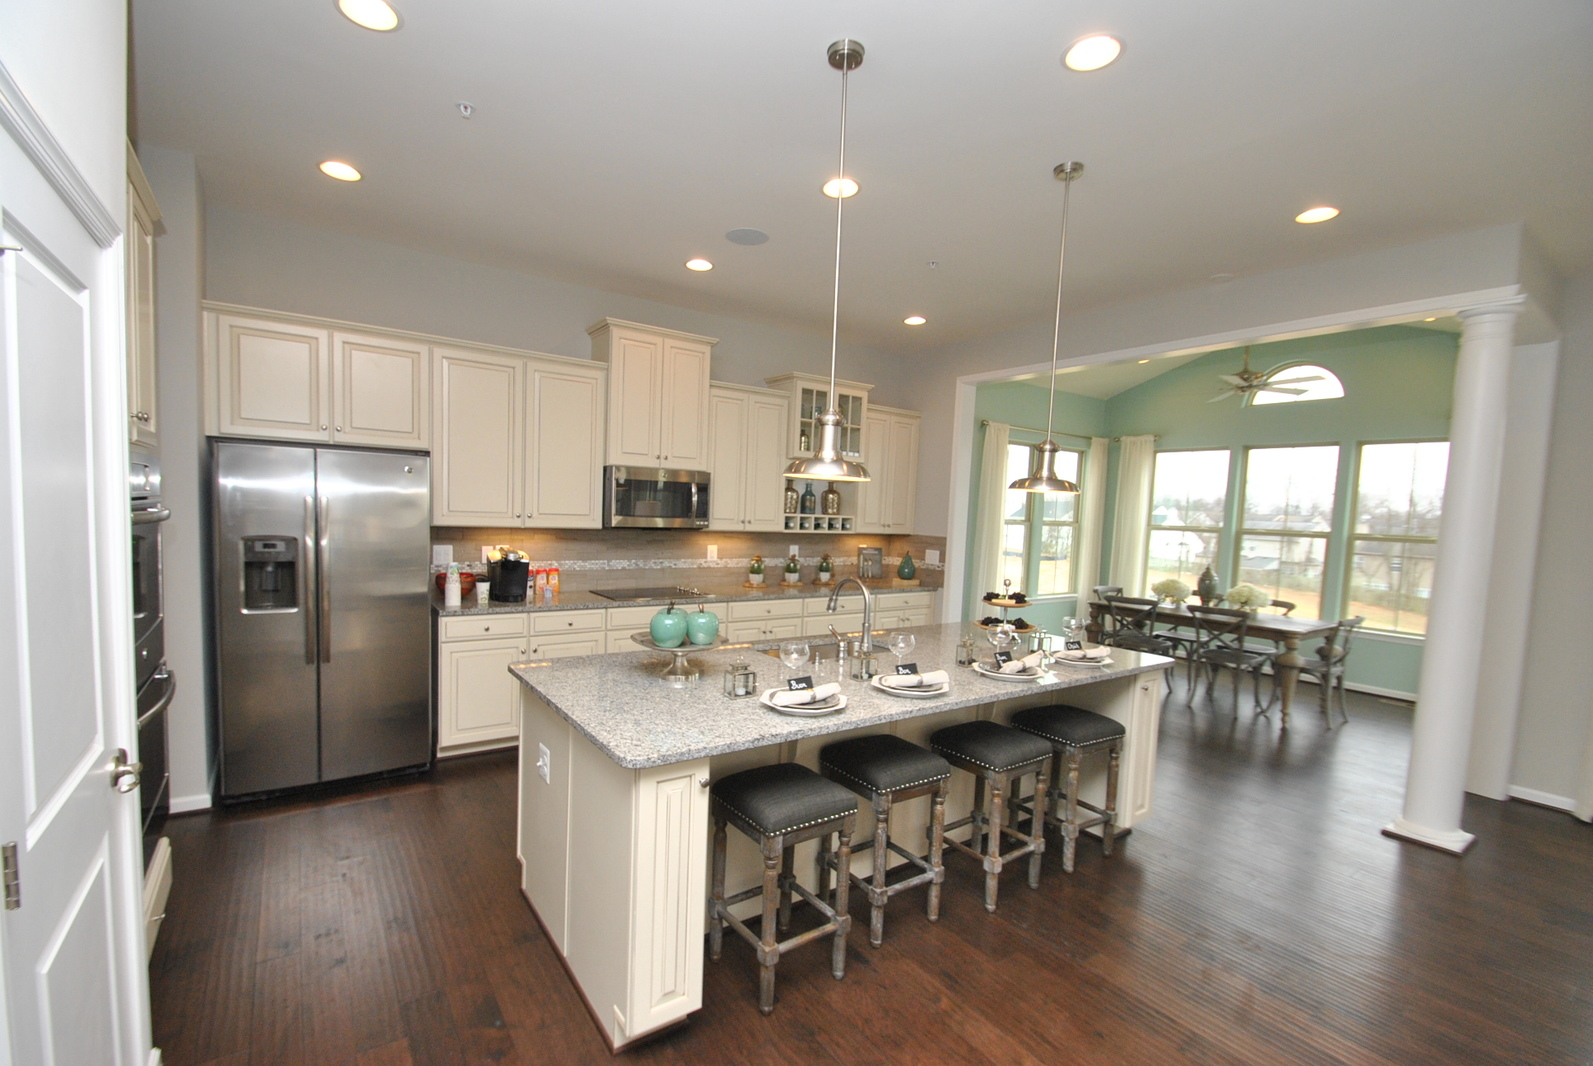 New Springhaven Home Model for sale at The Mills At Rocky River in – Ryan Homes Springhaven Floor Plan